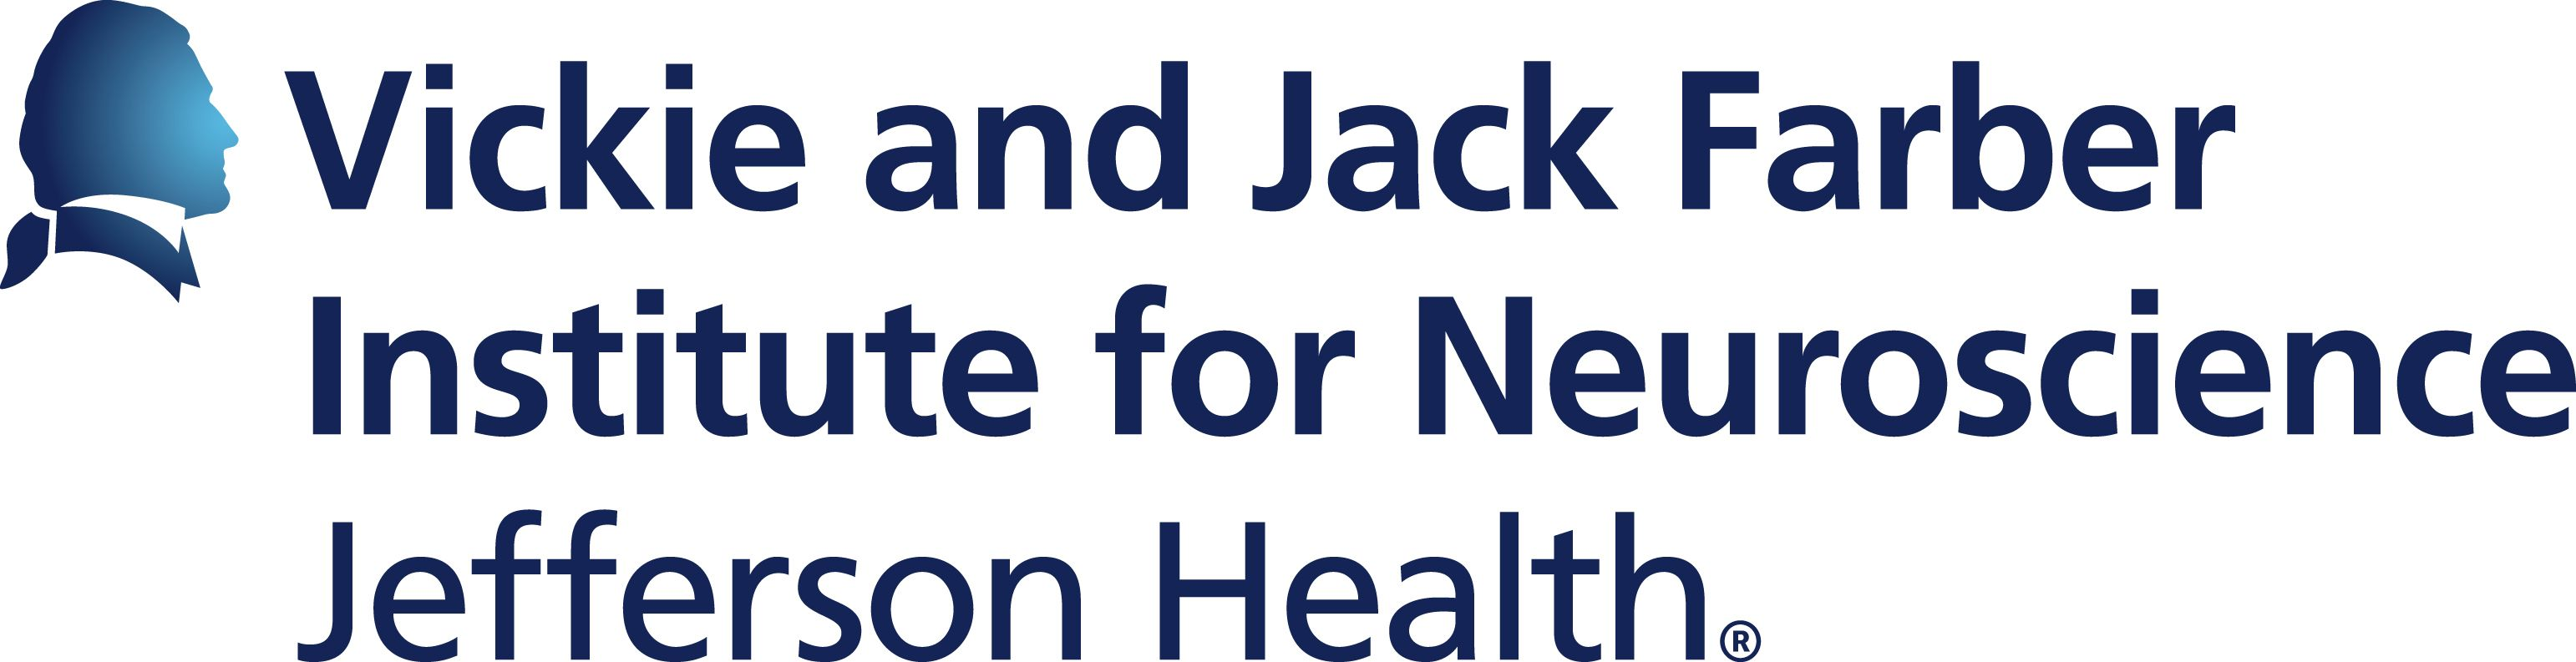 Jefferson Health Vickie and Jack Farber Institute for Neuroscience logo